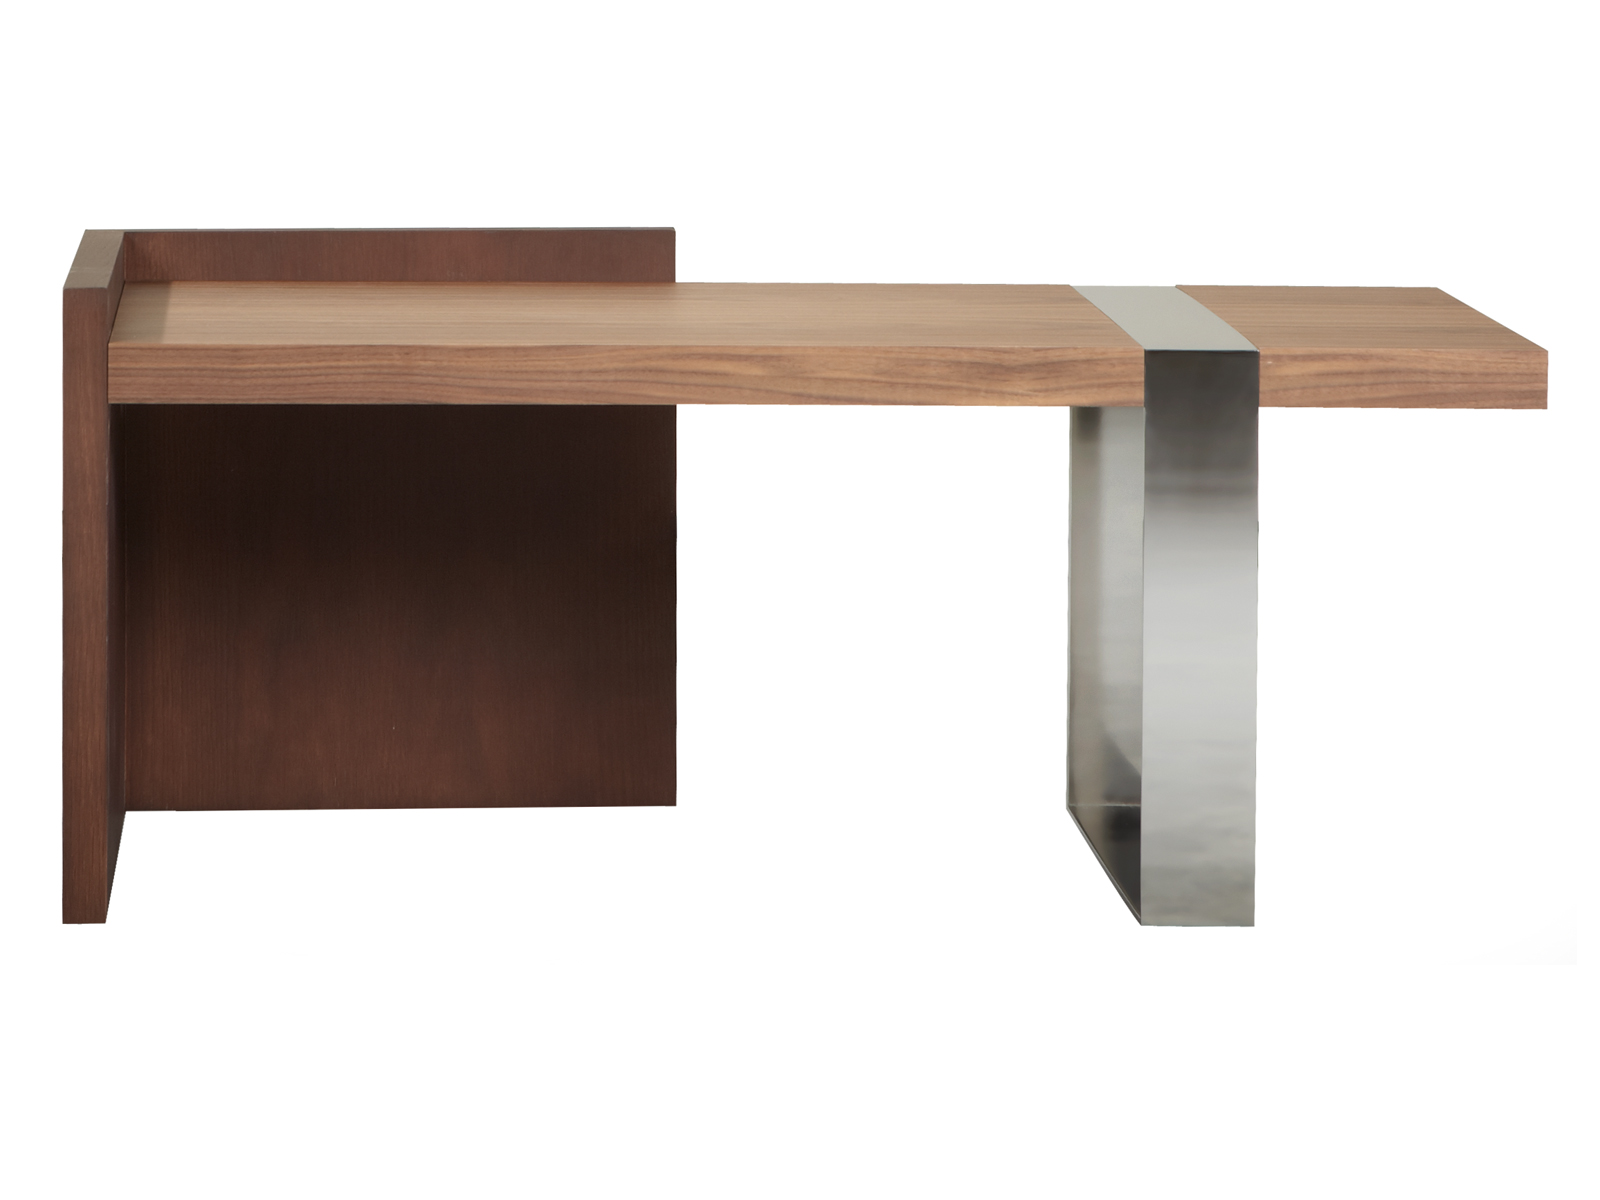 Low Wood Veneer Coffee Table For Living Room Baa By Azea Design Victor Caetano